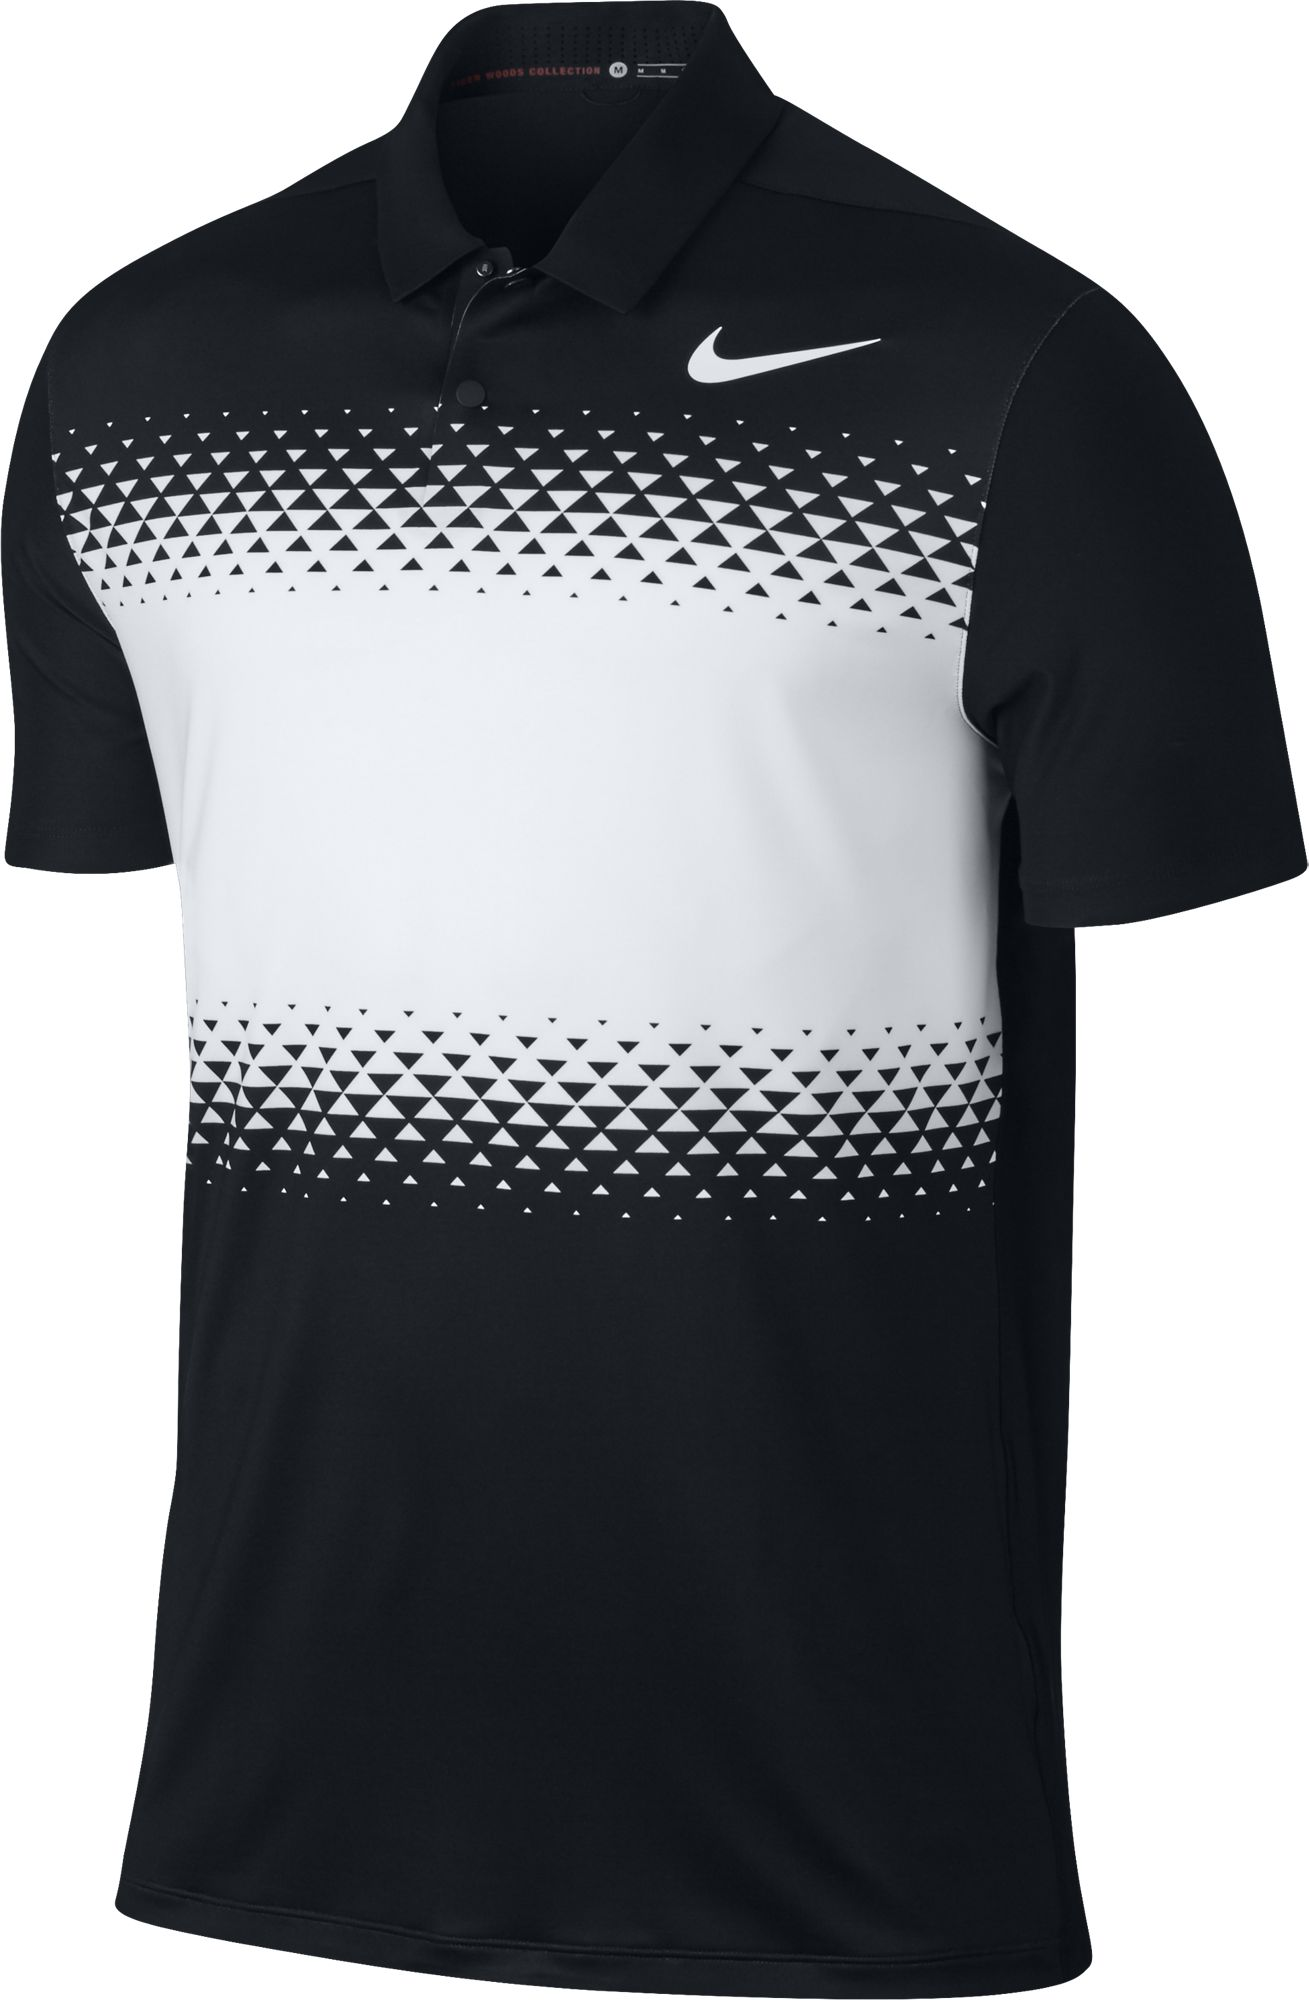 2017 Nike TW Mobility Majors Polo Golf Shirt Mens 833165 ...